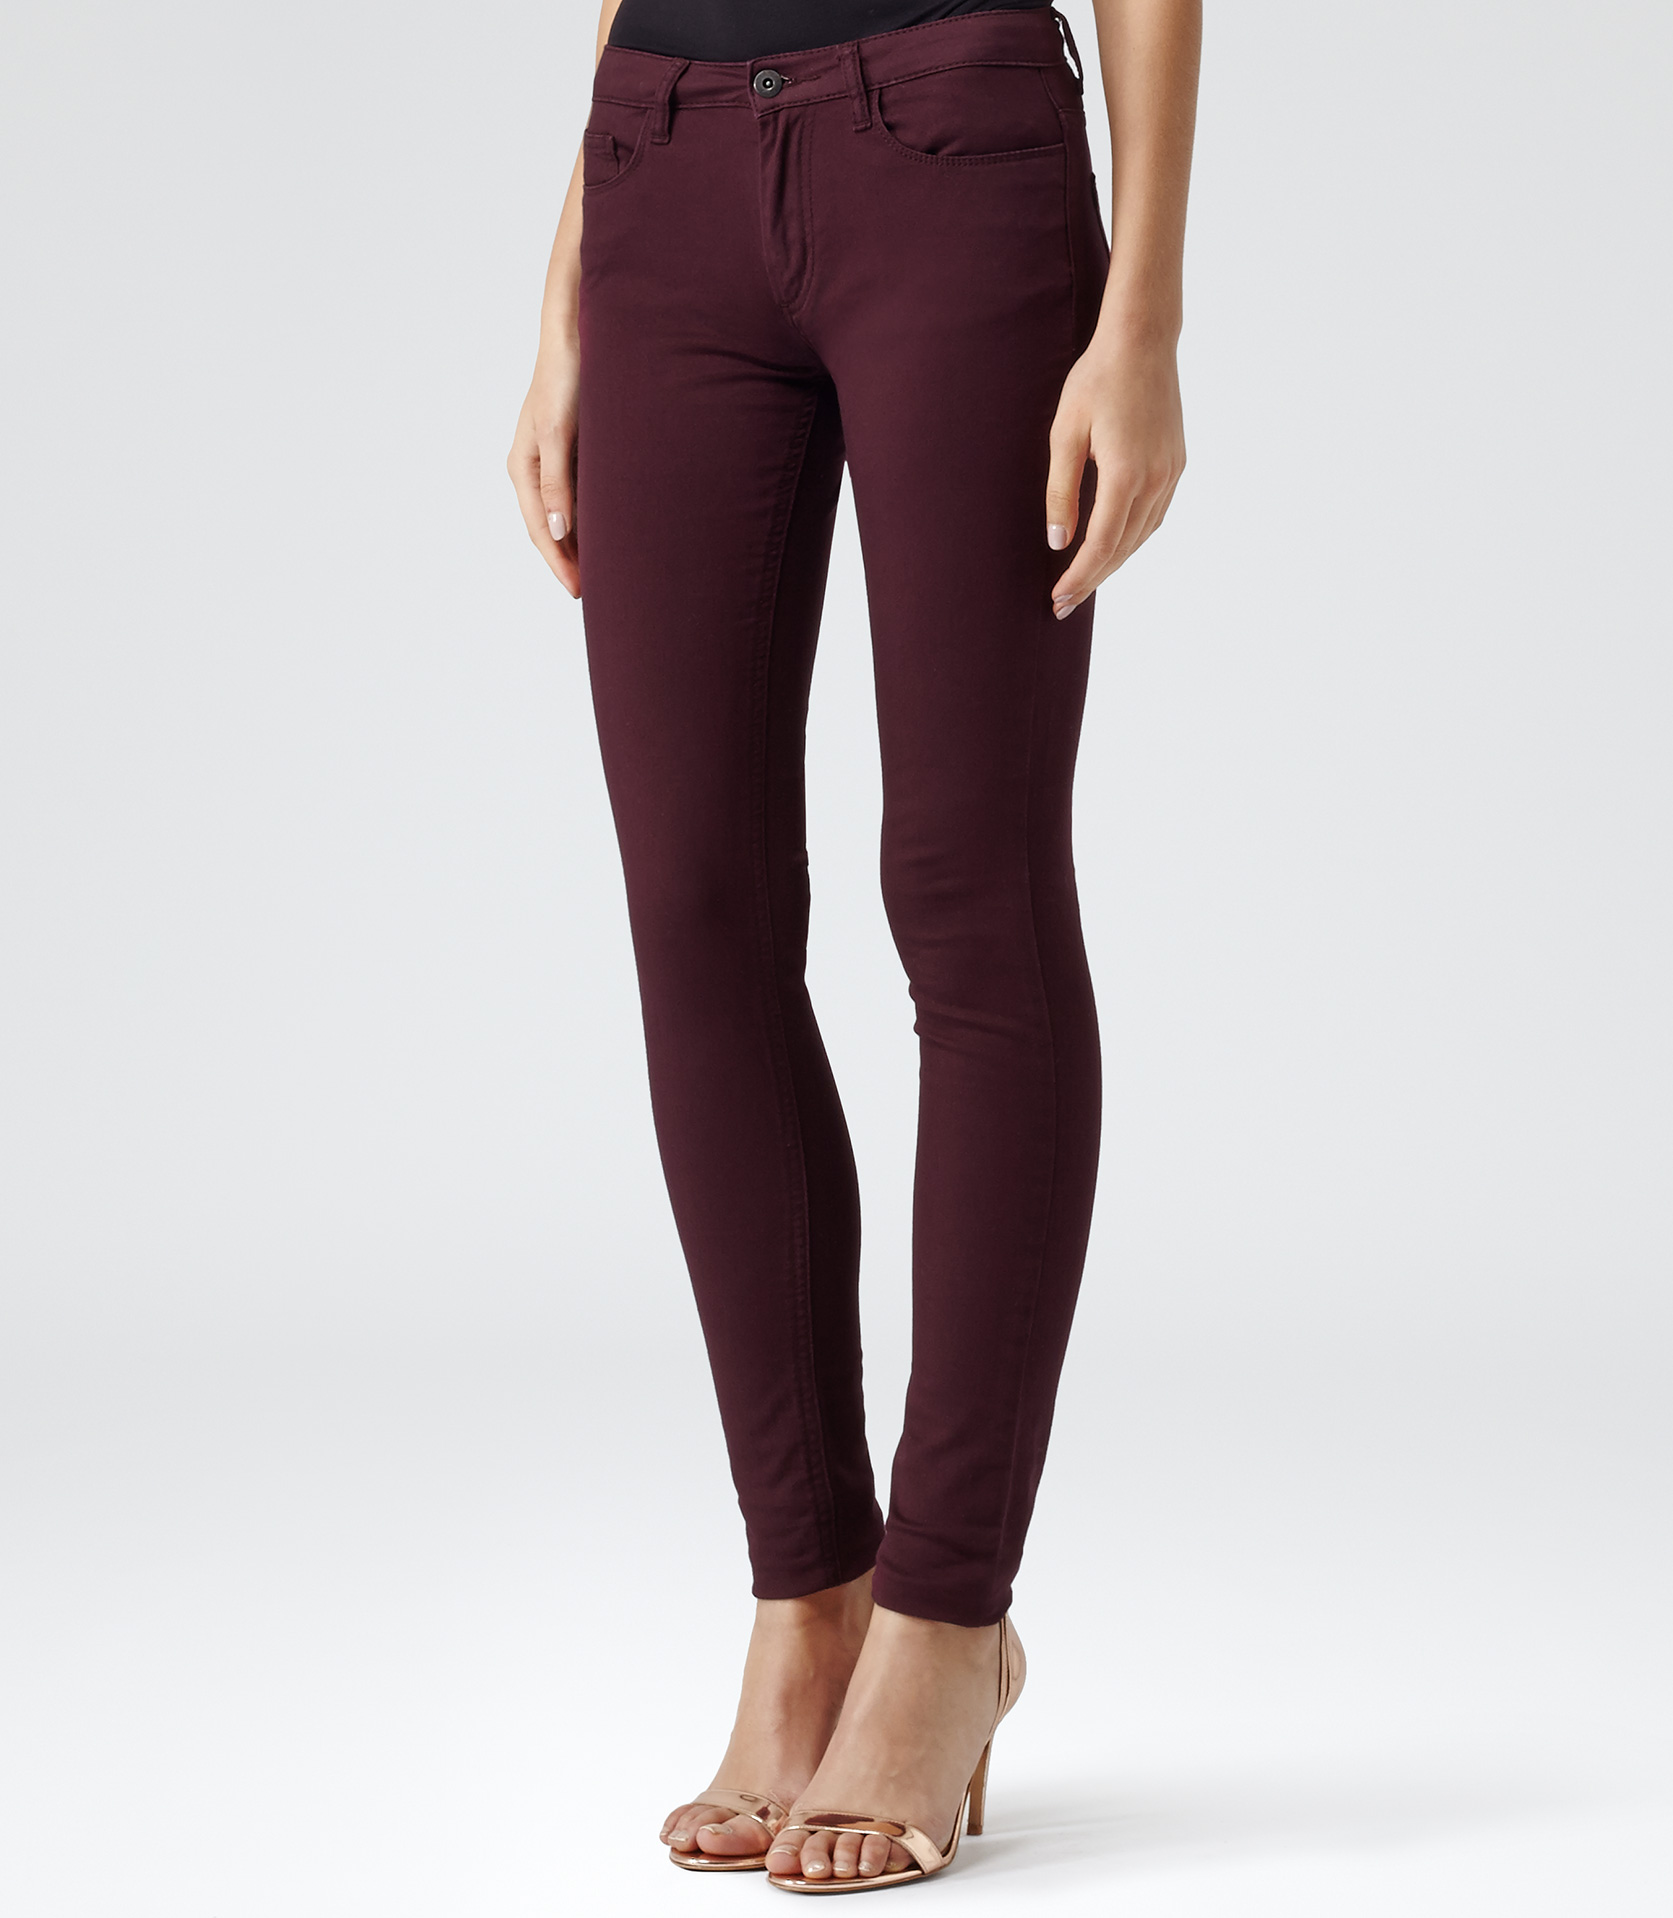 Reiss Smith Colour Coloured Skinny Jeans in Red | Lyst